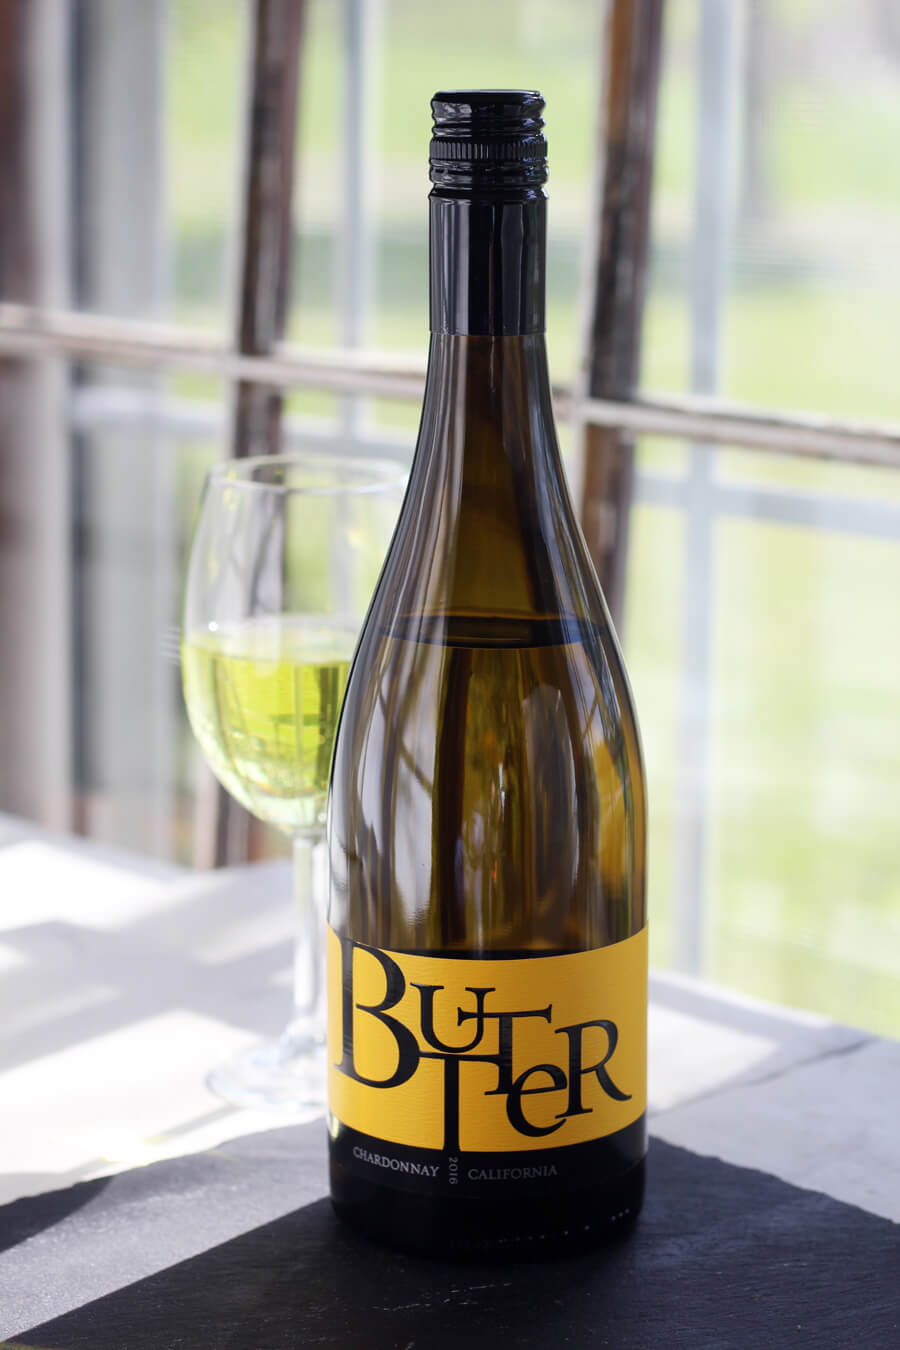 A bottle of Butter Chardonnay from JaM Cellars